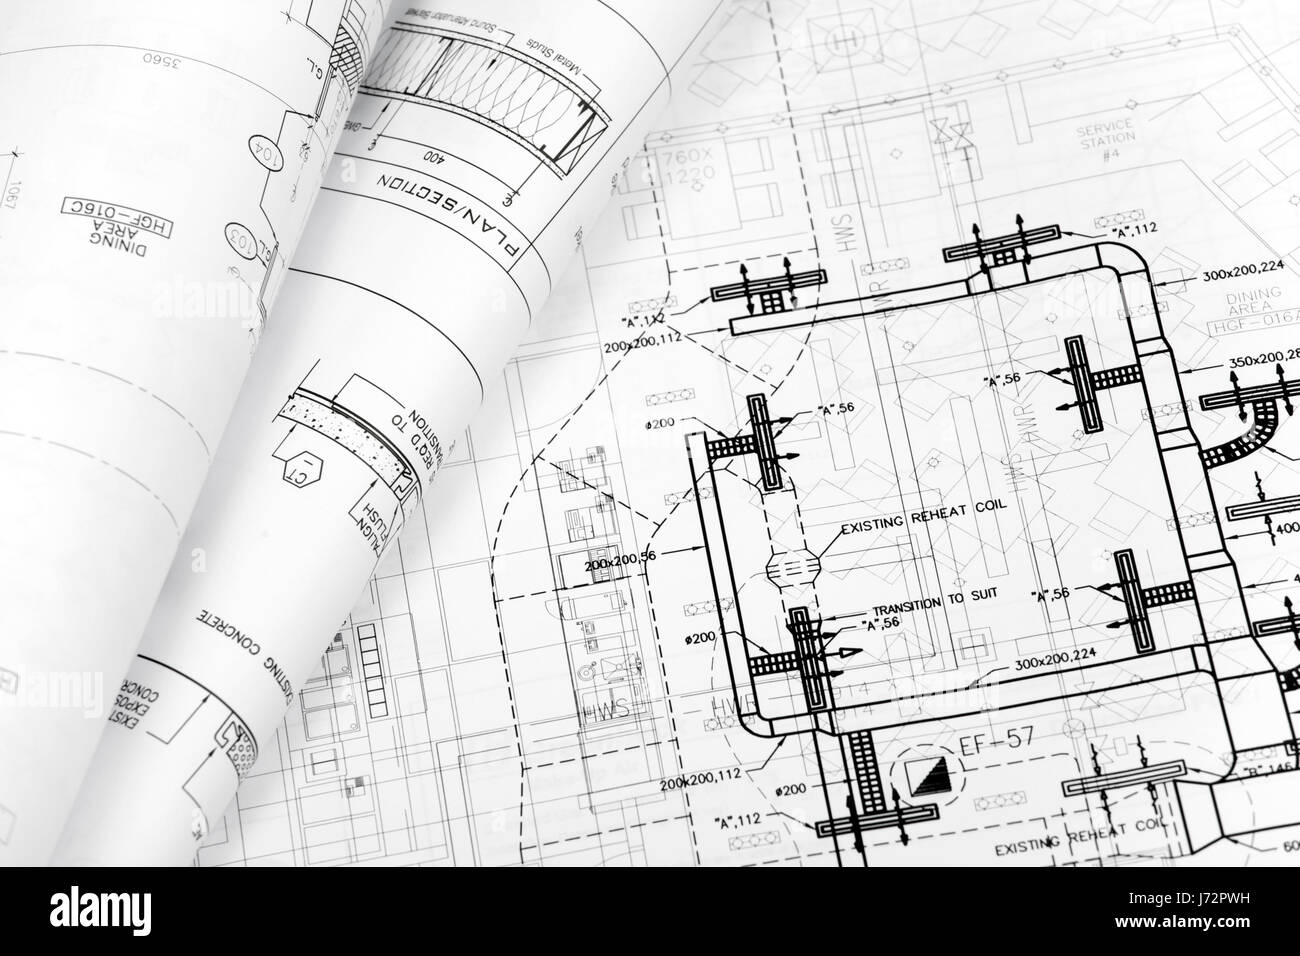 Architectural technical blueprint background engineering stock architectural technical blueprint background engineering construction malvernweather Images